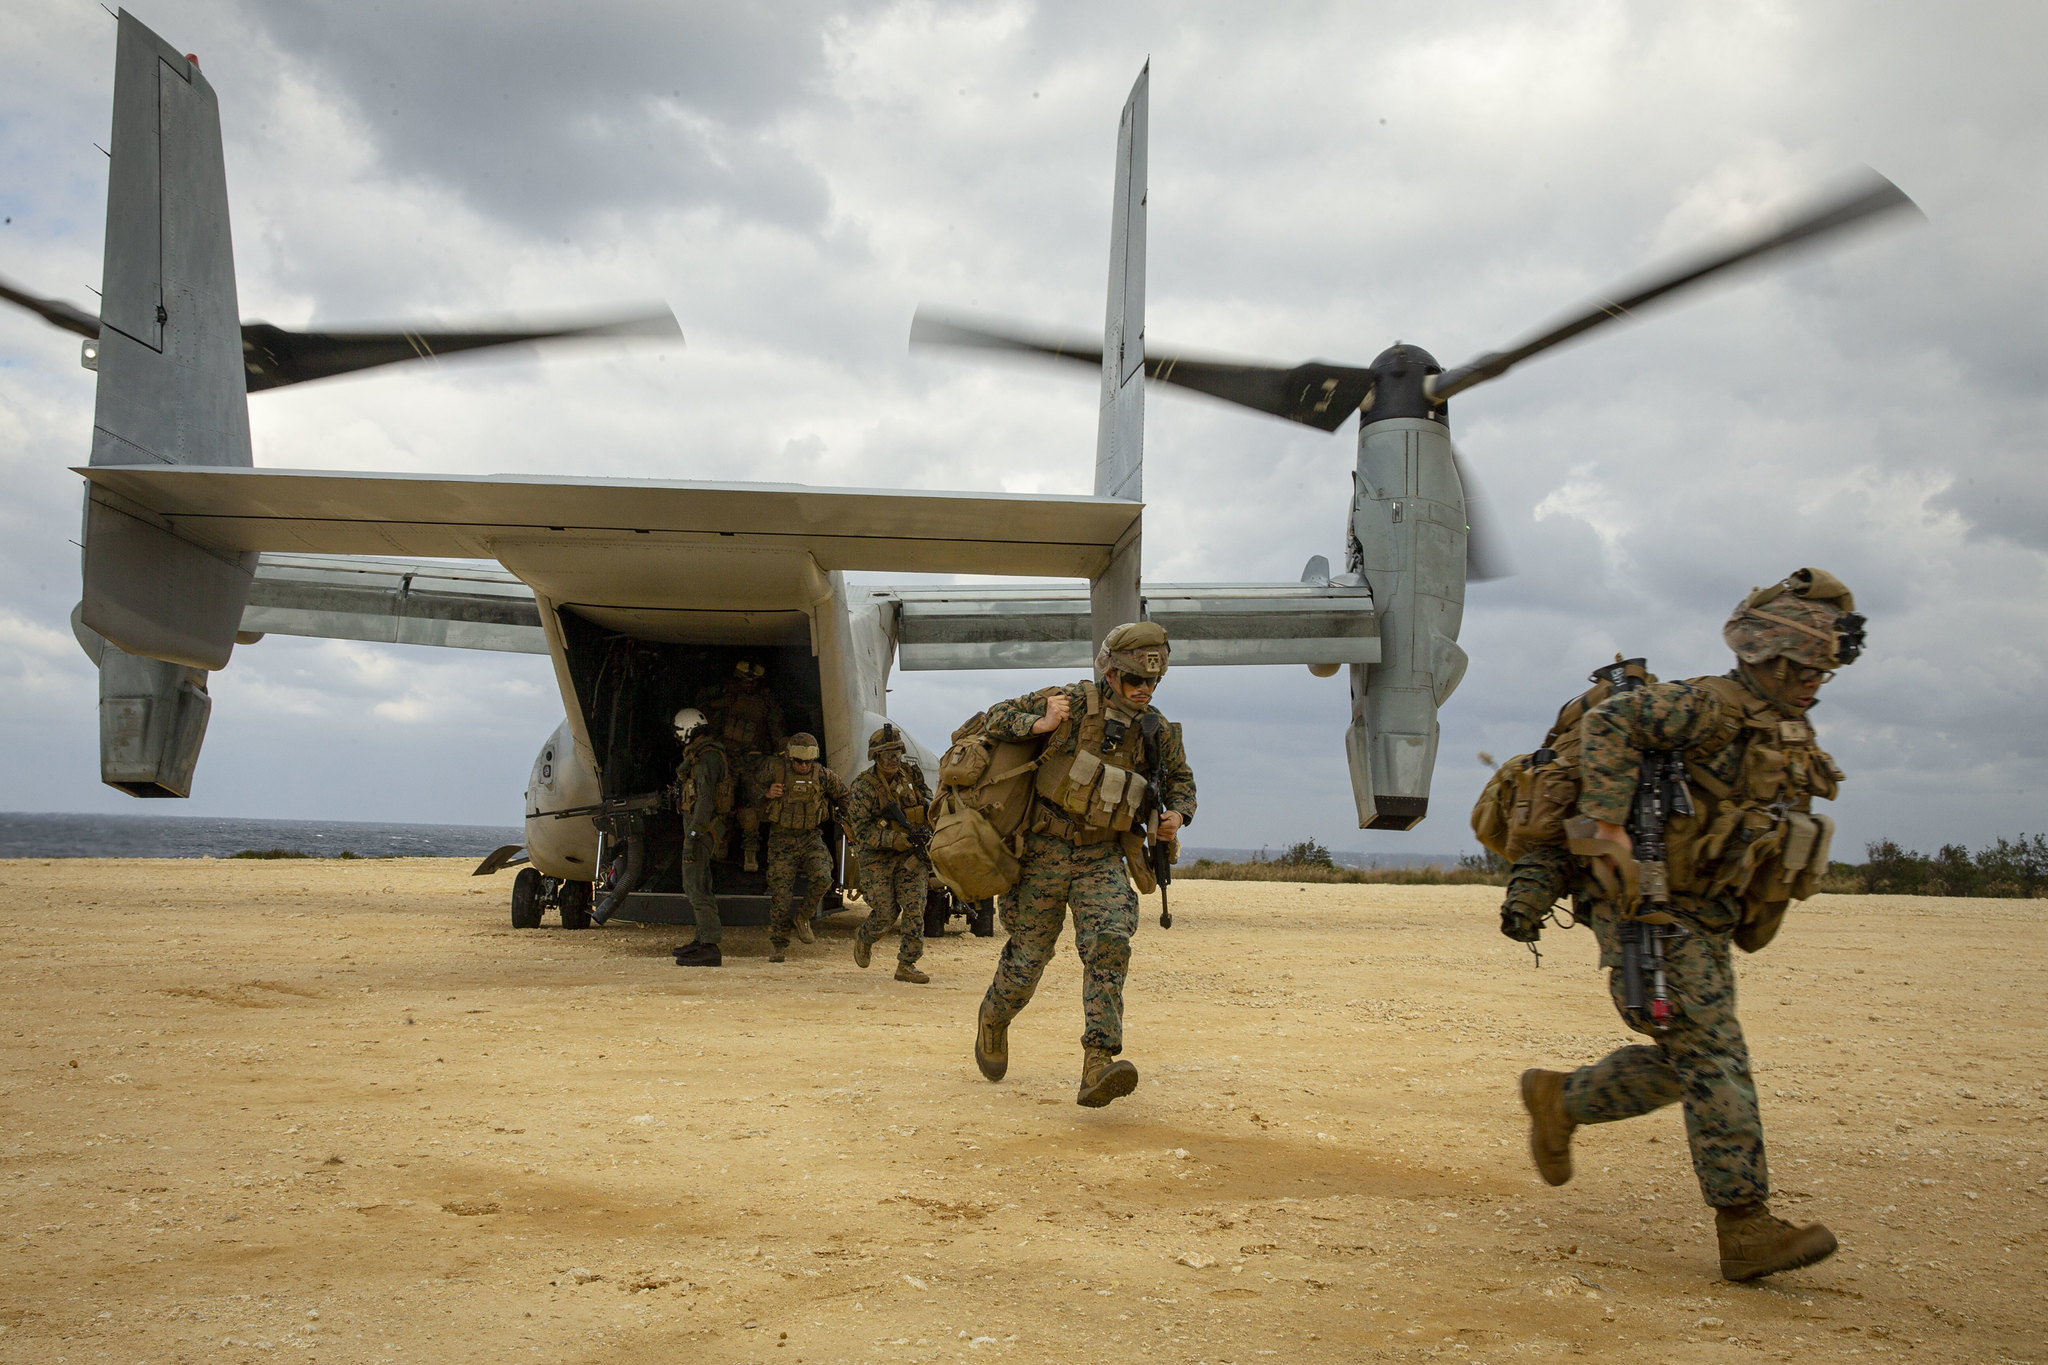 U.S. Marines run out of an MV-22B Osprey tiltrotor aircraft on Jan. 28, 2021, during an exercise on Ie Shima, Okinawa, Japan. (Cpl. Cody Rowe/Marine Corps)